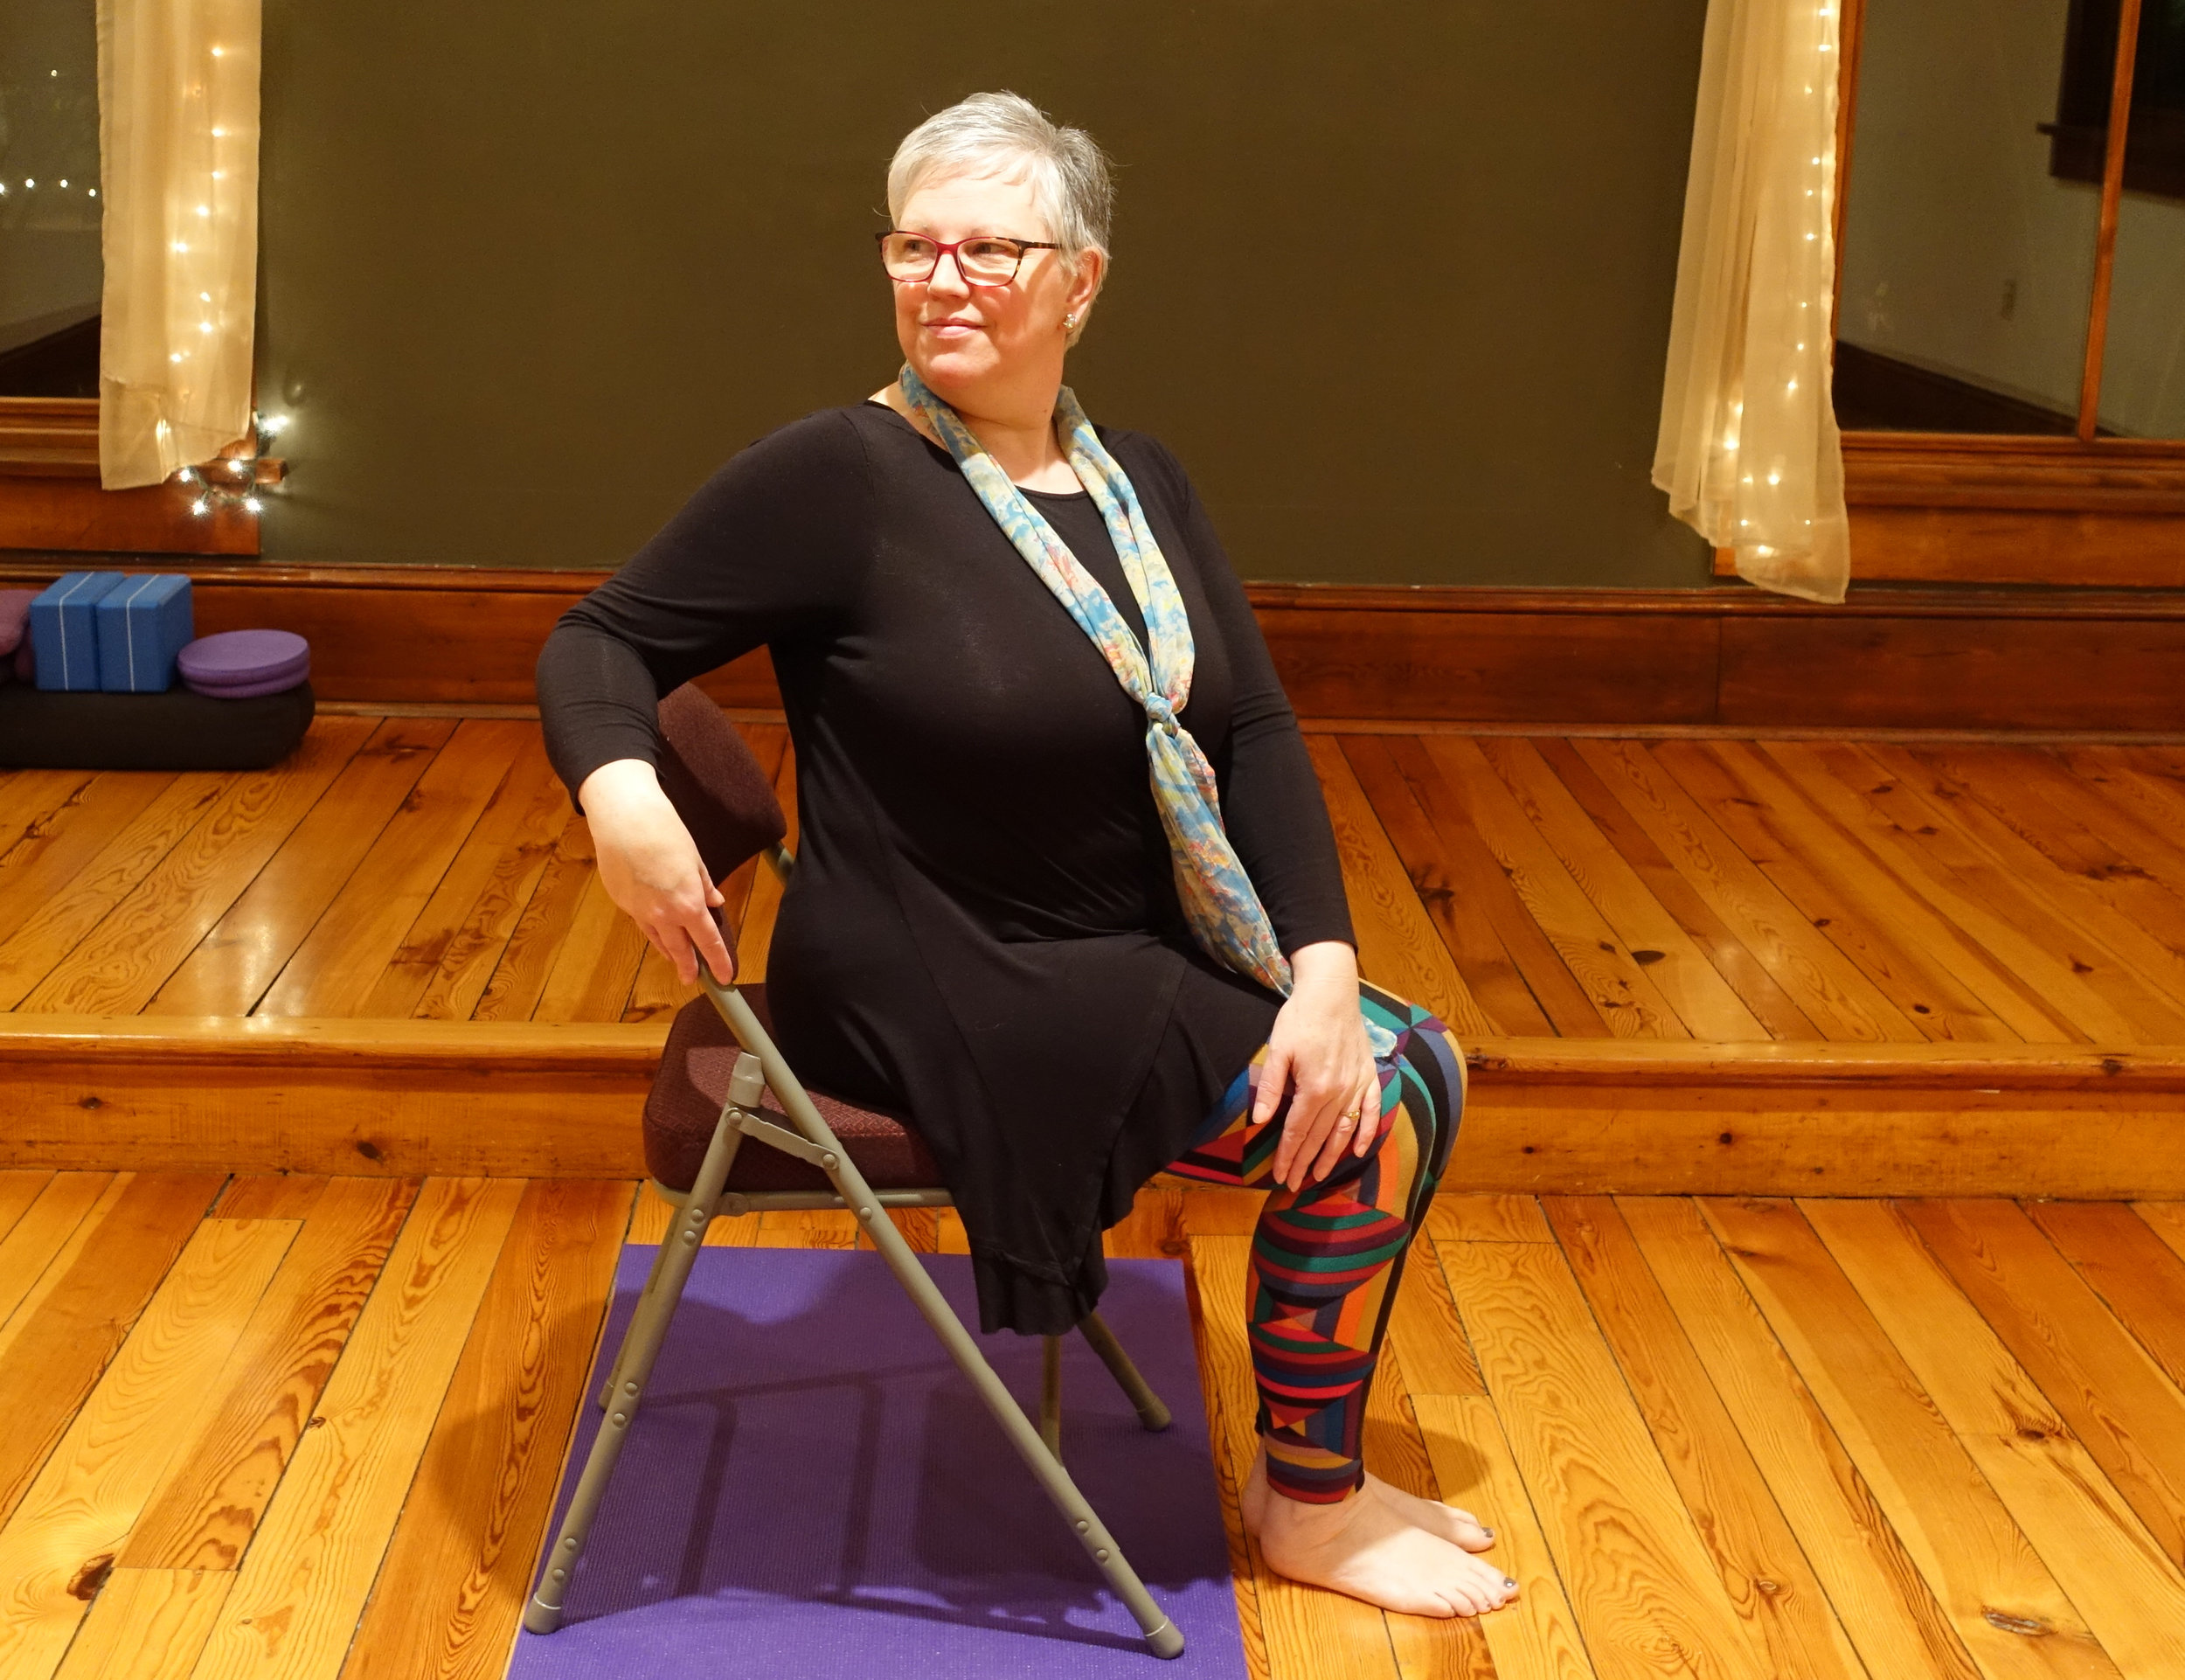 Mairi in Seated Twist in a Chair Posture